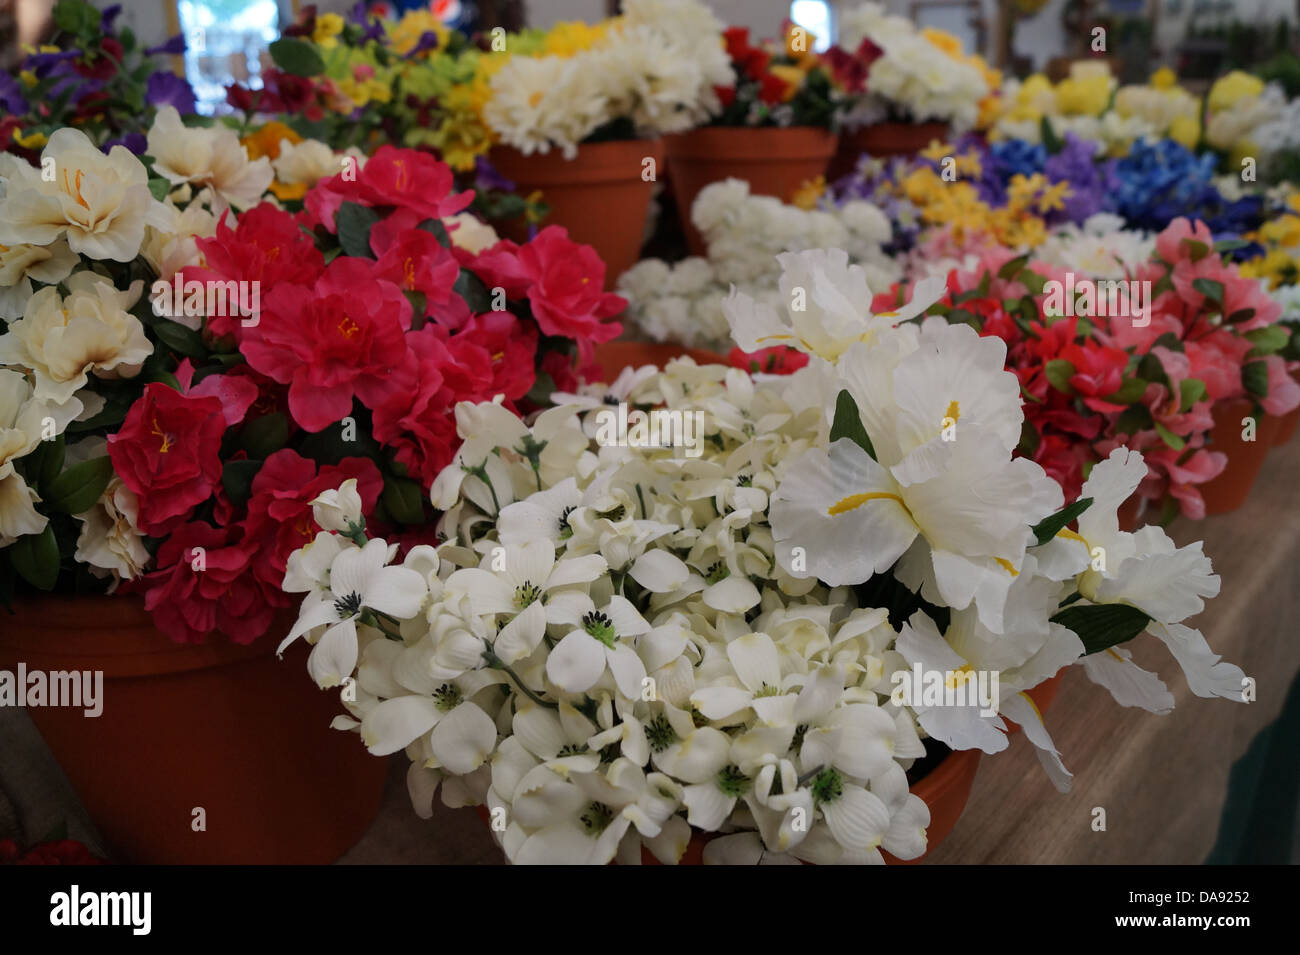 Fake Flowers For Sale Stock Photos & Fake Flowers For Sale Stock ...